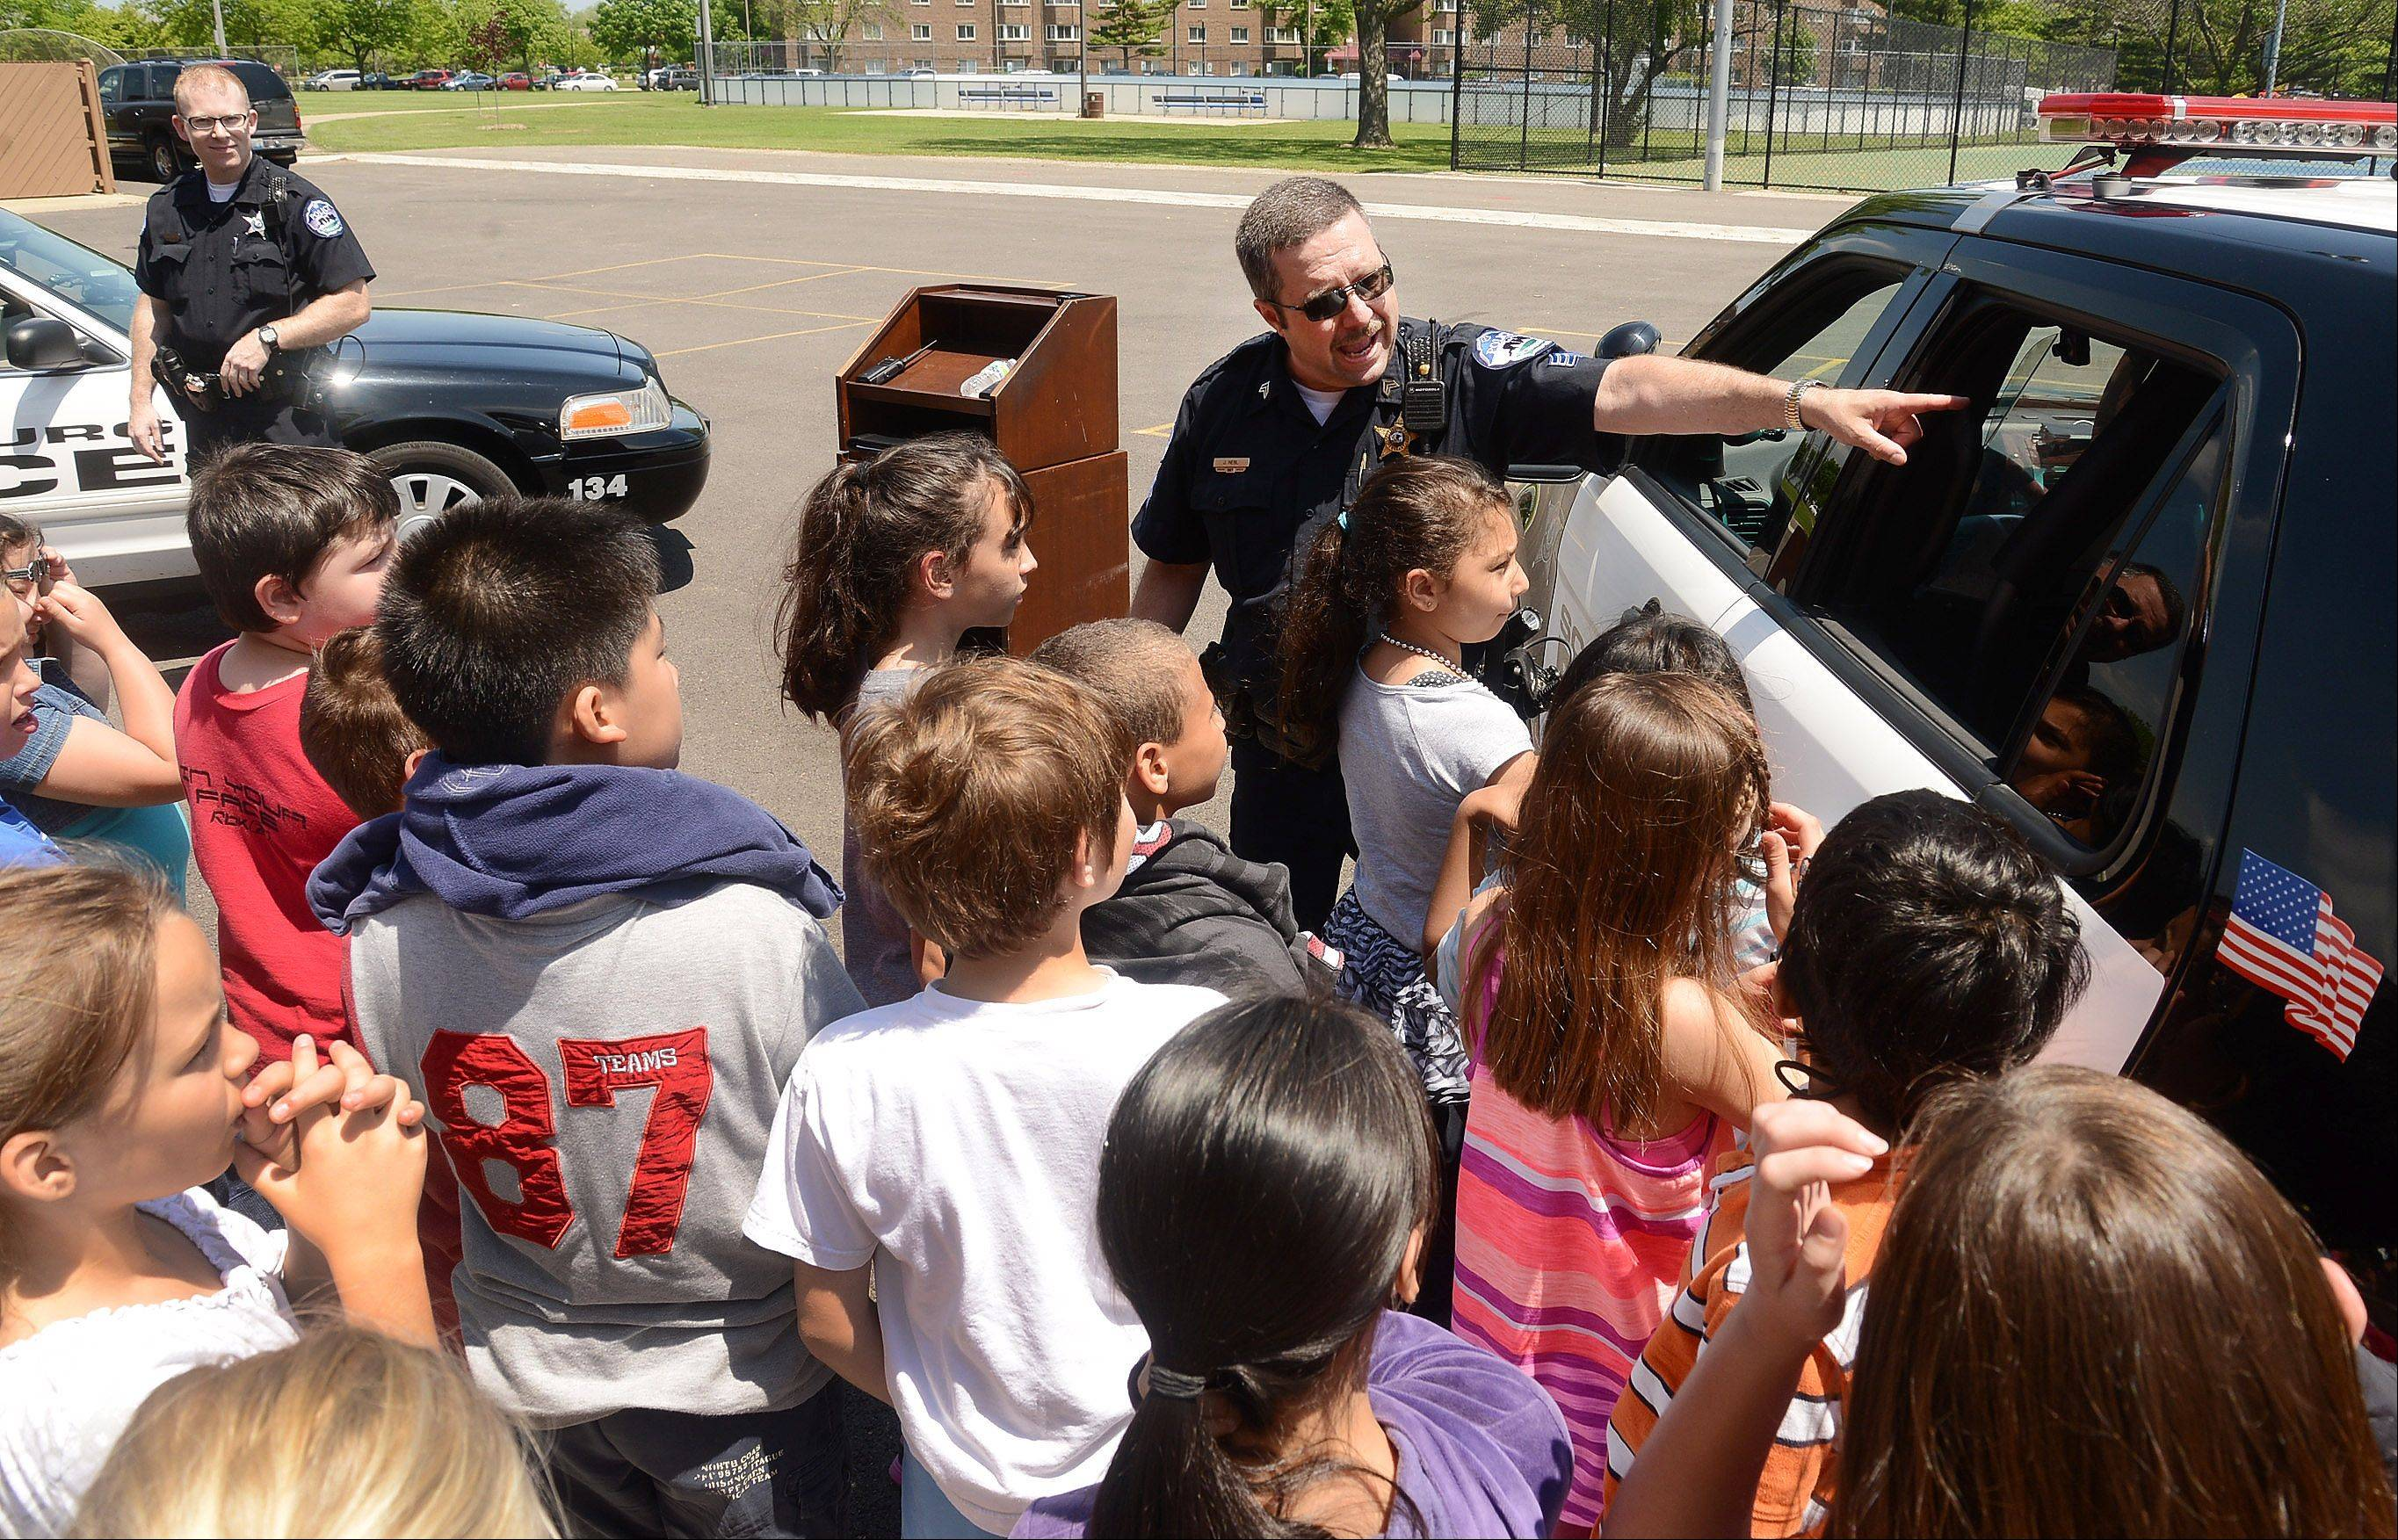 Schaumburg police debut new squad cars at school